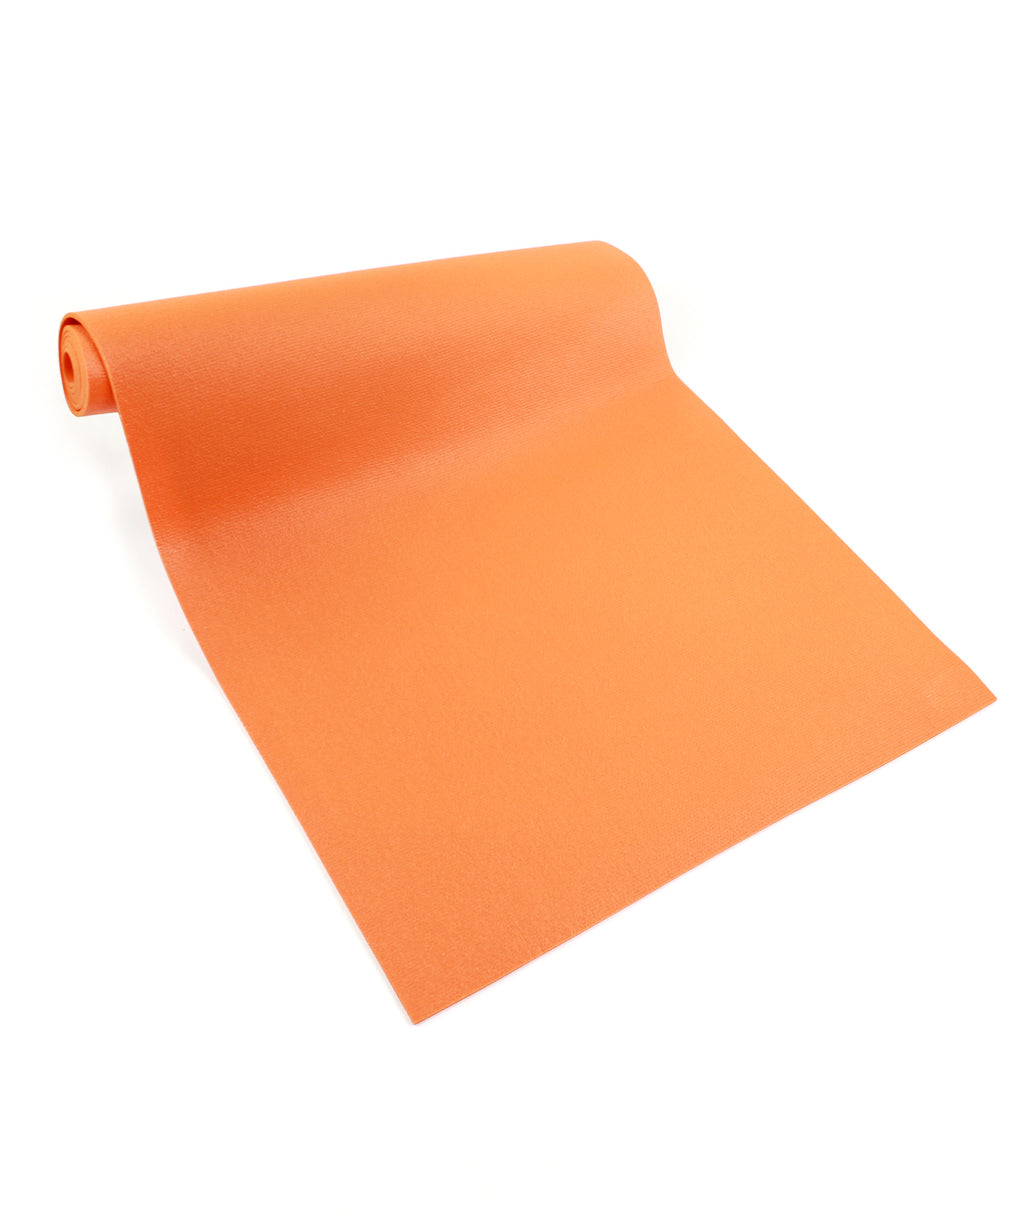 Boudavida Yoga Mat Orange